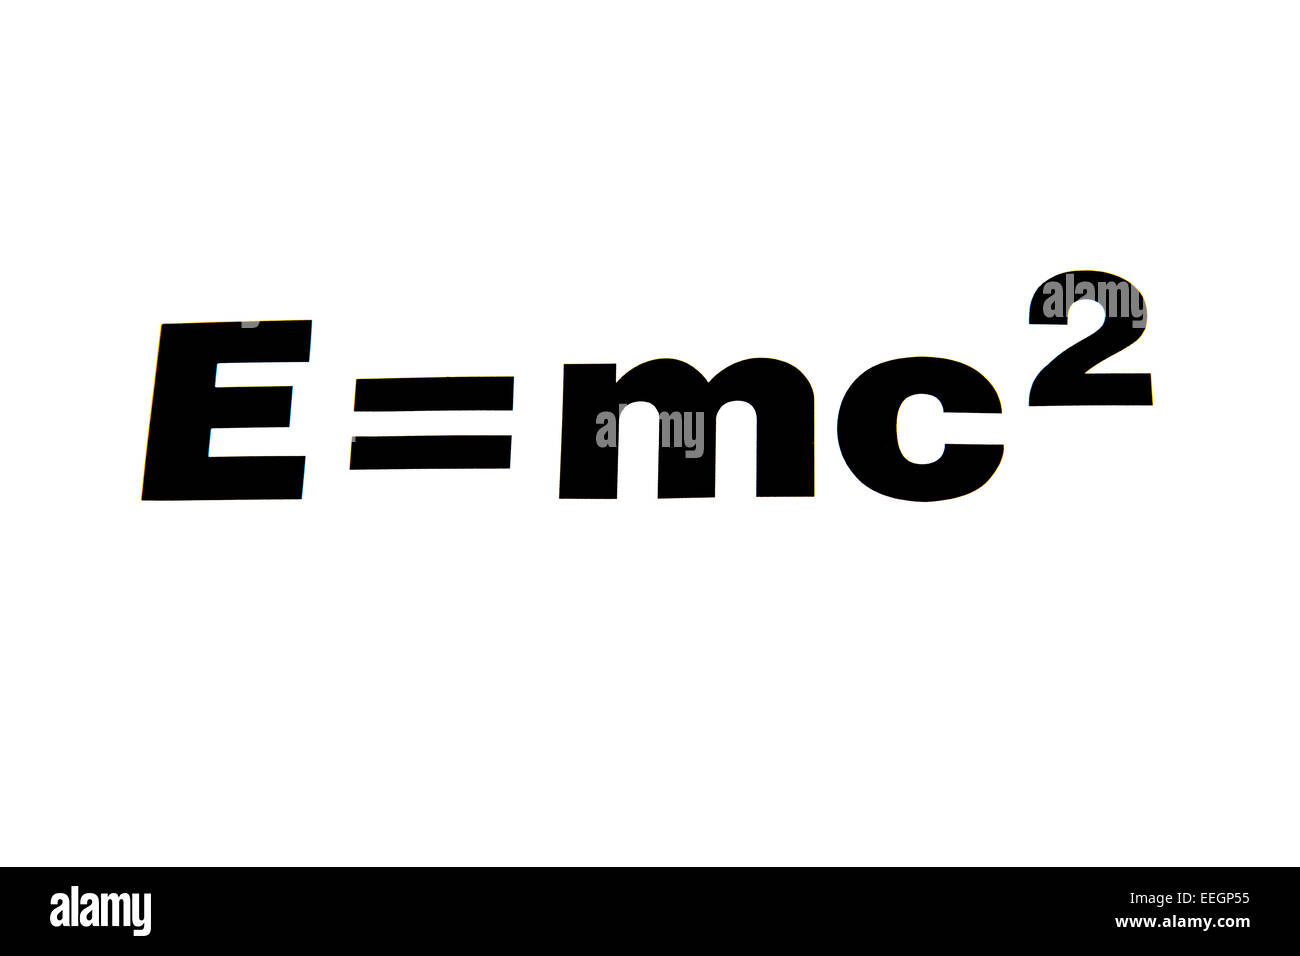 Emc2 Emc 2 Squared Square Equation Einstein Word Written Print Cut